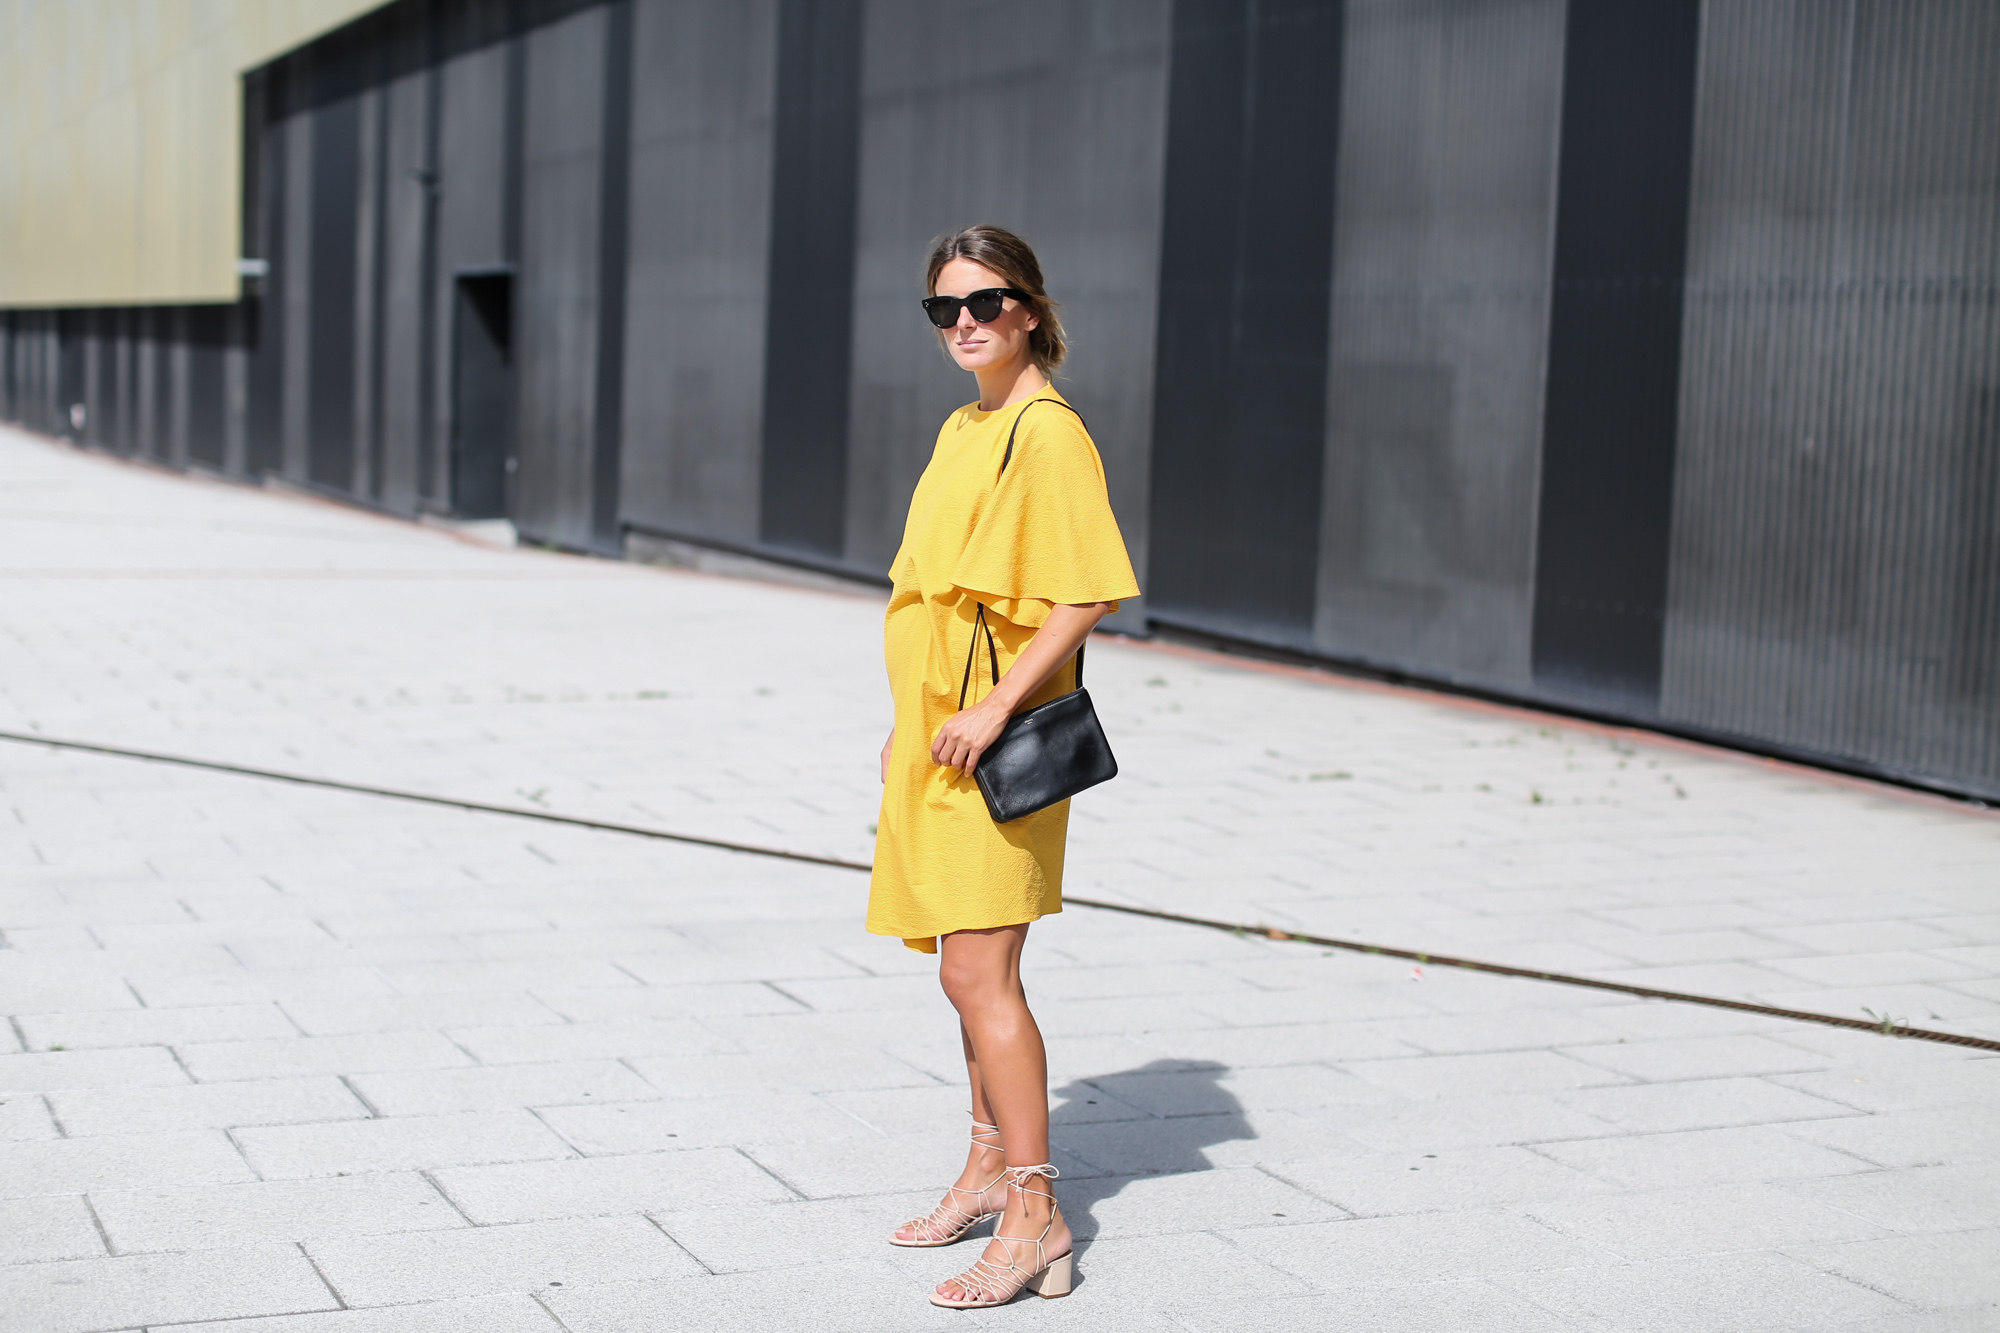 Clochet_streetstyle_fashionblogger_bilbao_zara_joinlife_yellow_minimaldress_celinetriobag-2